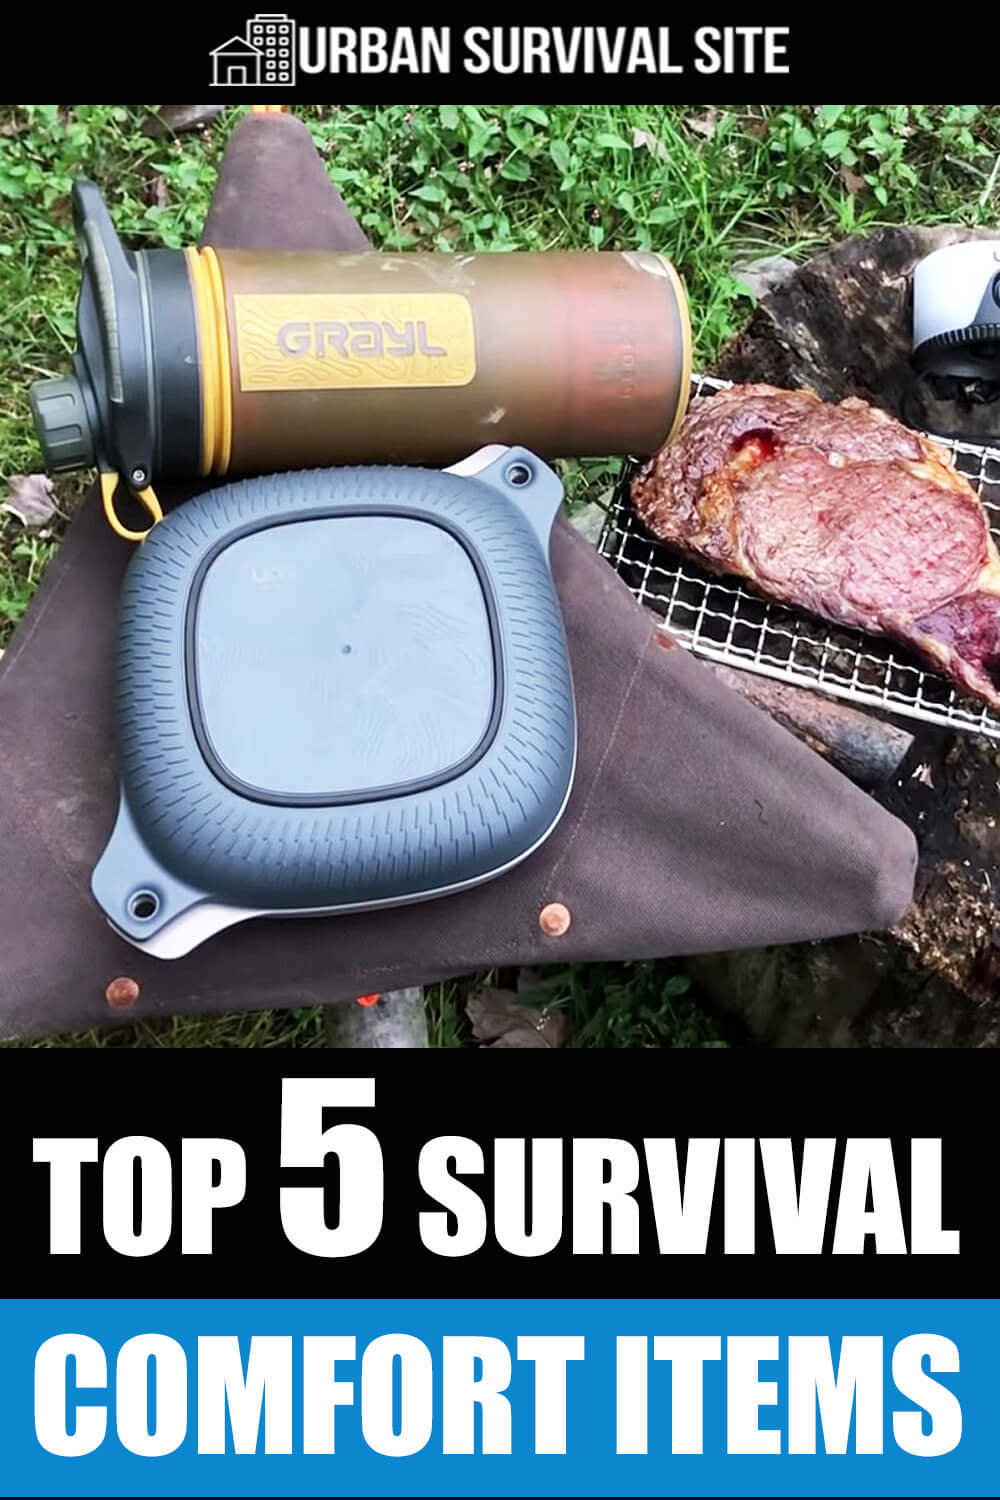 Top 5 Survival Comfort Items